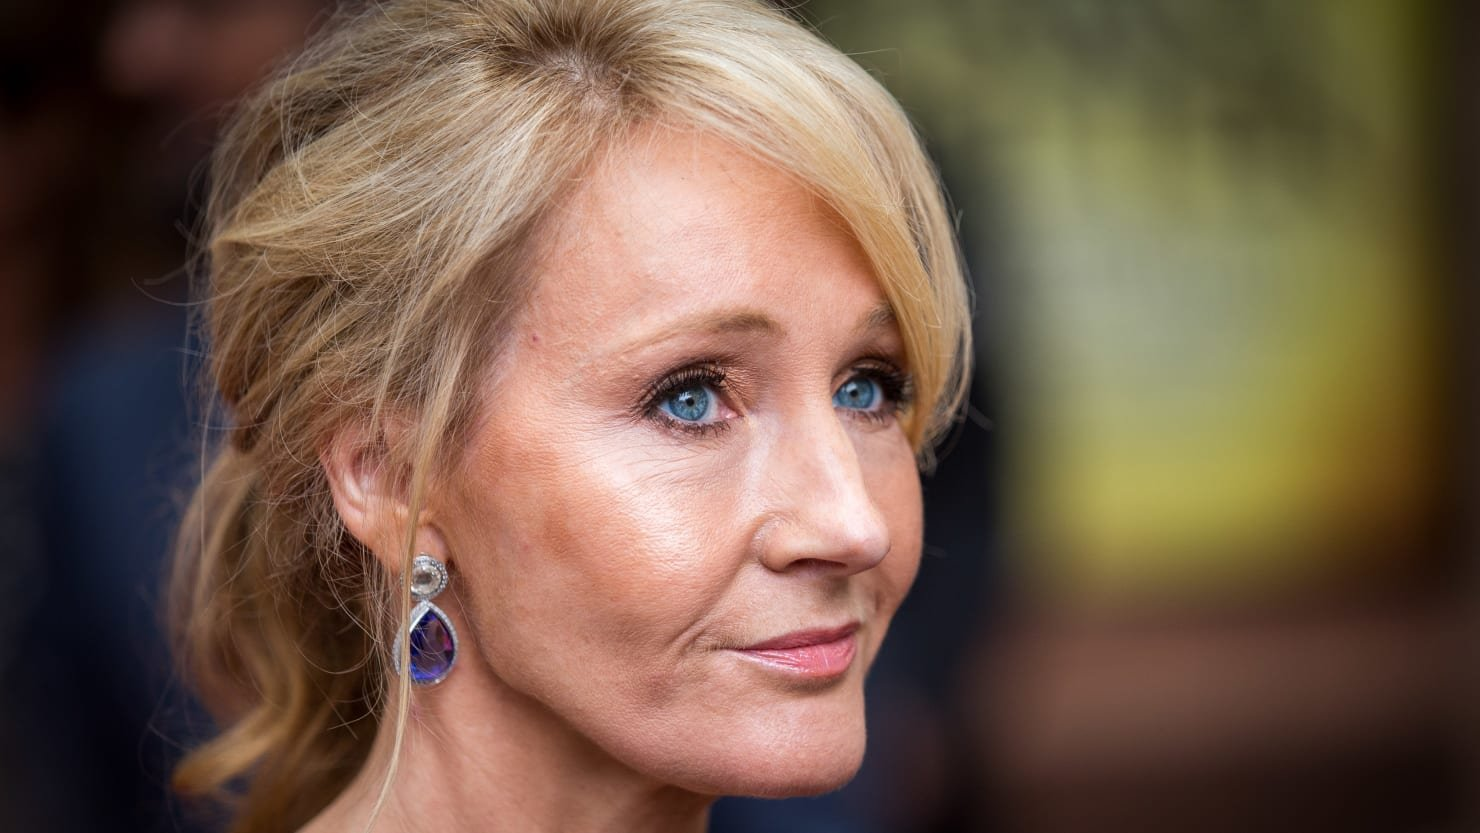 JK Rowling Doubles Down On Her Transphobia